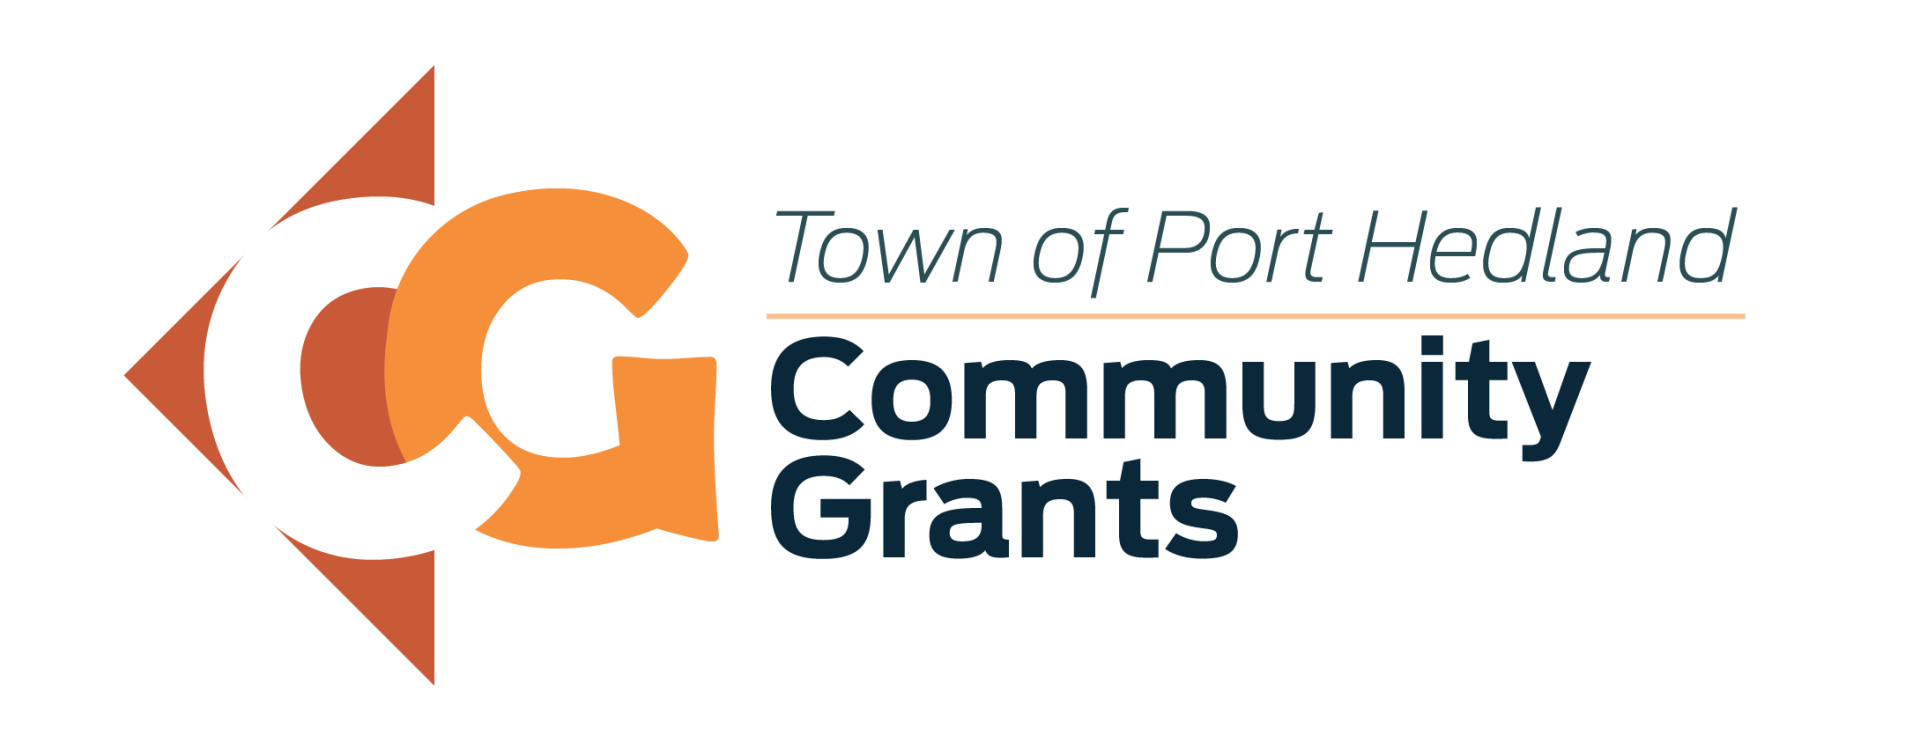 Grant funding will support health, safety and recreation projects